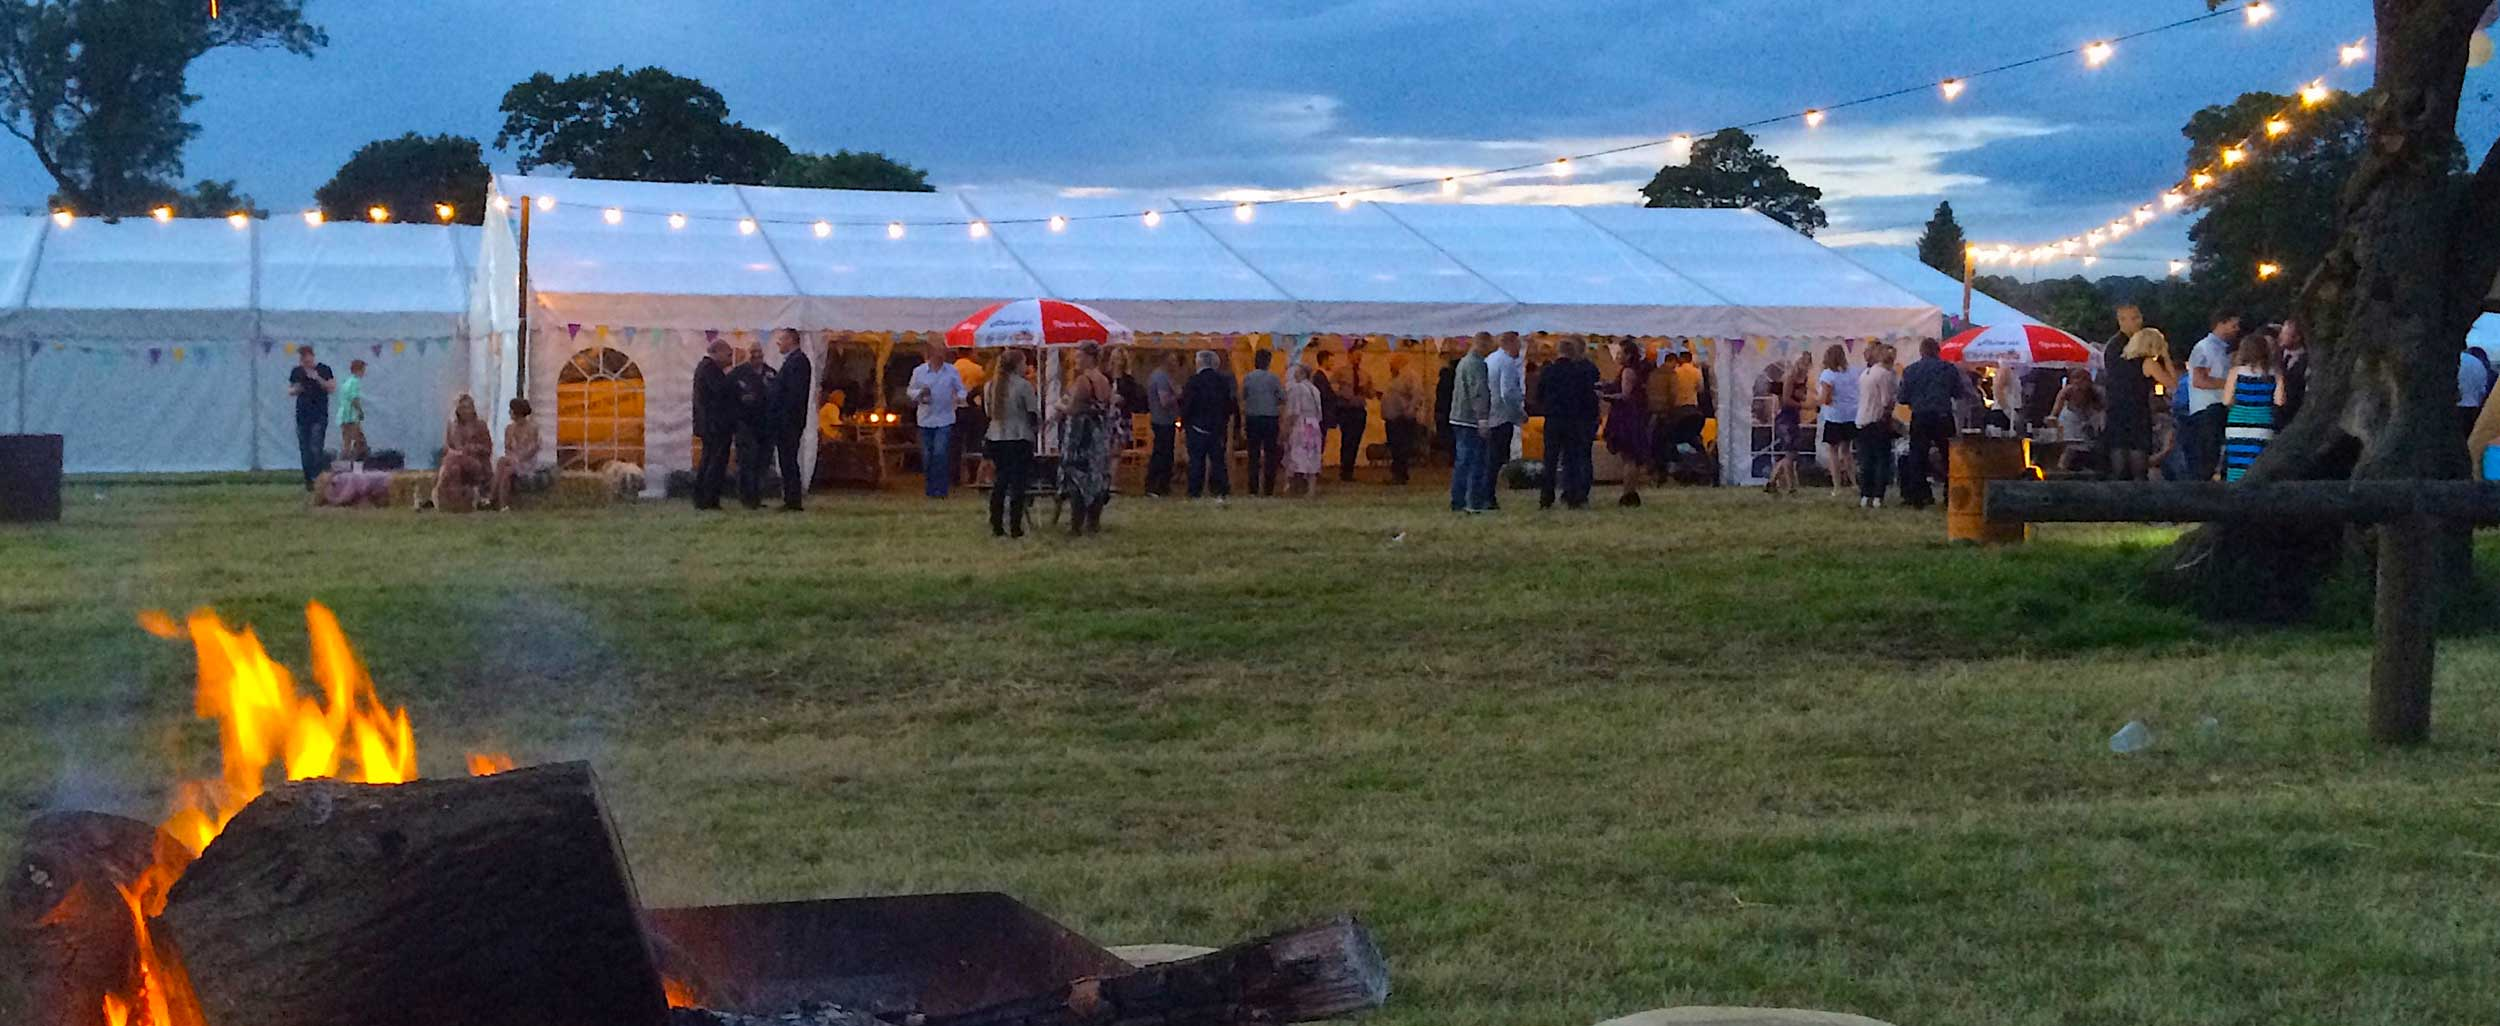 Festival u0026 Beer Tents & Festival u0026 Fete Marquees | Professional Marquee Hire in Yorkshire ...